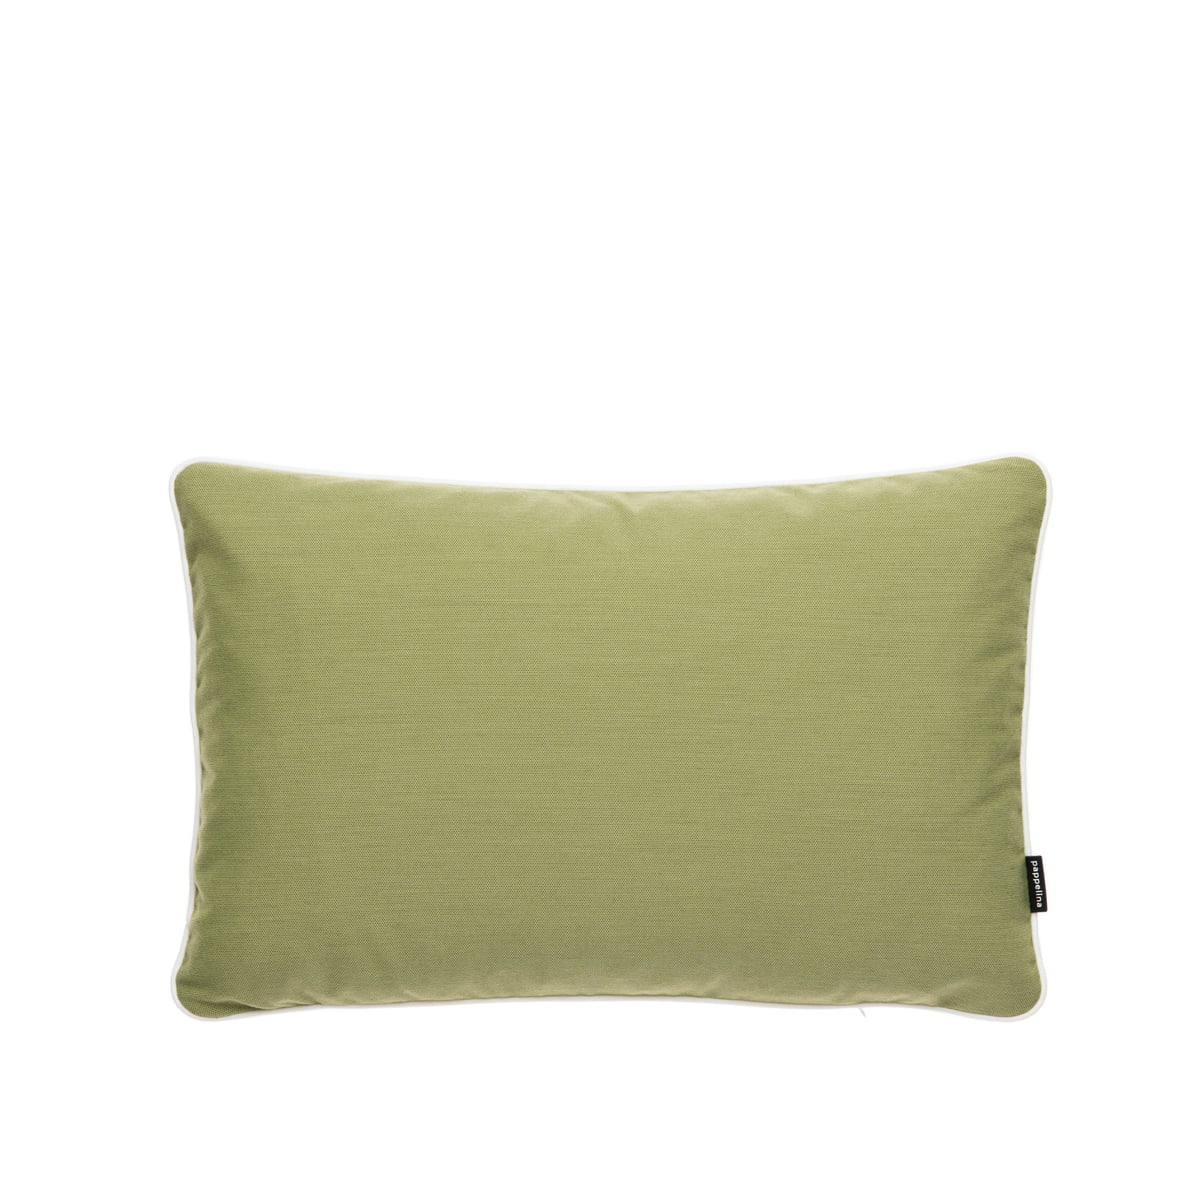 Pappelina Sunny Outdoor Cushion 38 X 58 Cm Mud